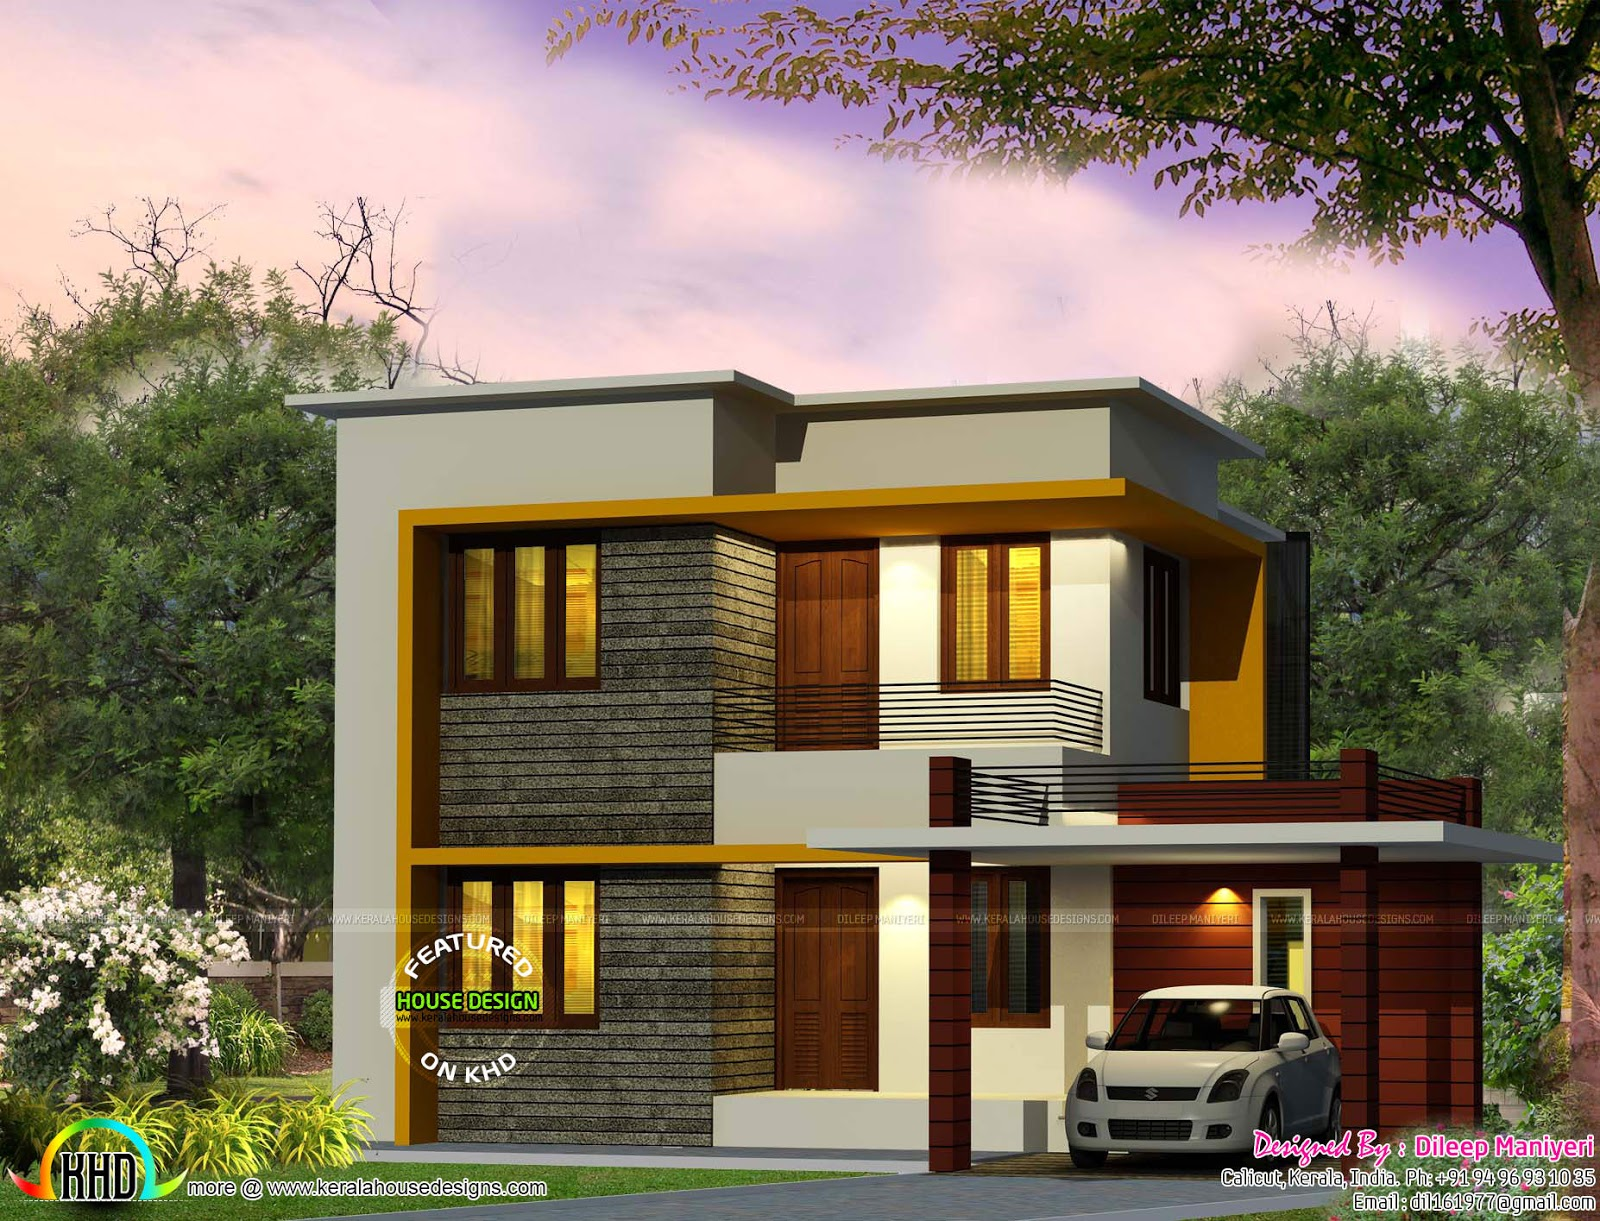 Cute 4 bedroom modern house 1670 sq ft kerala home for Modern 2 bedroom home designs